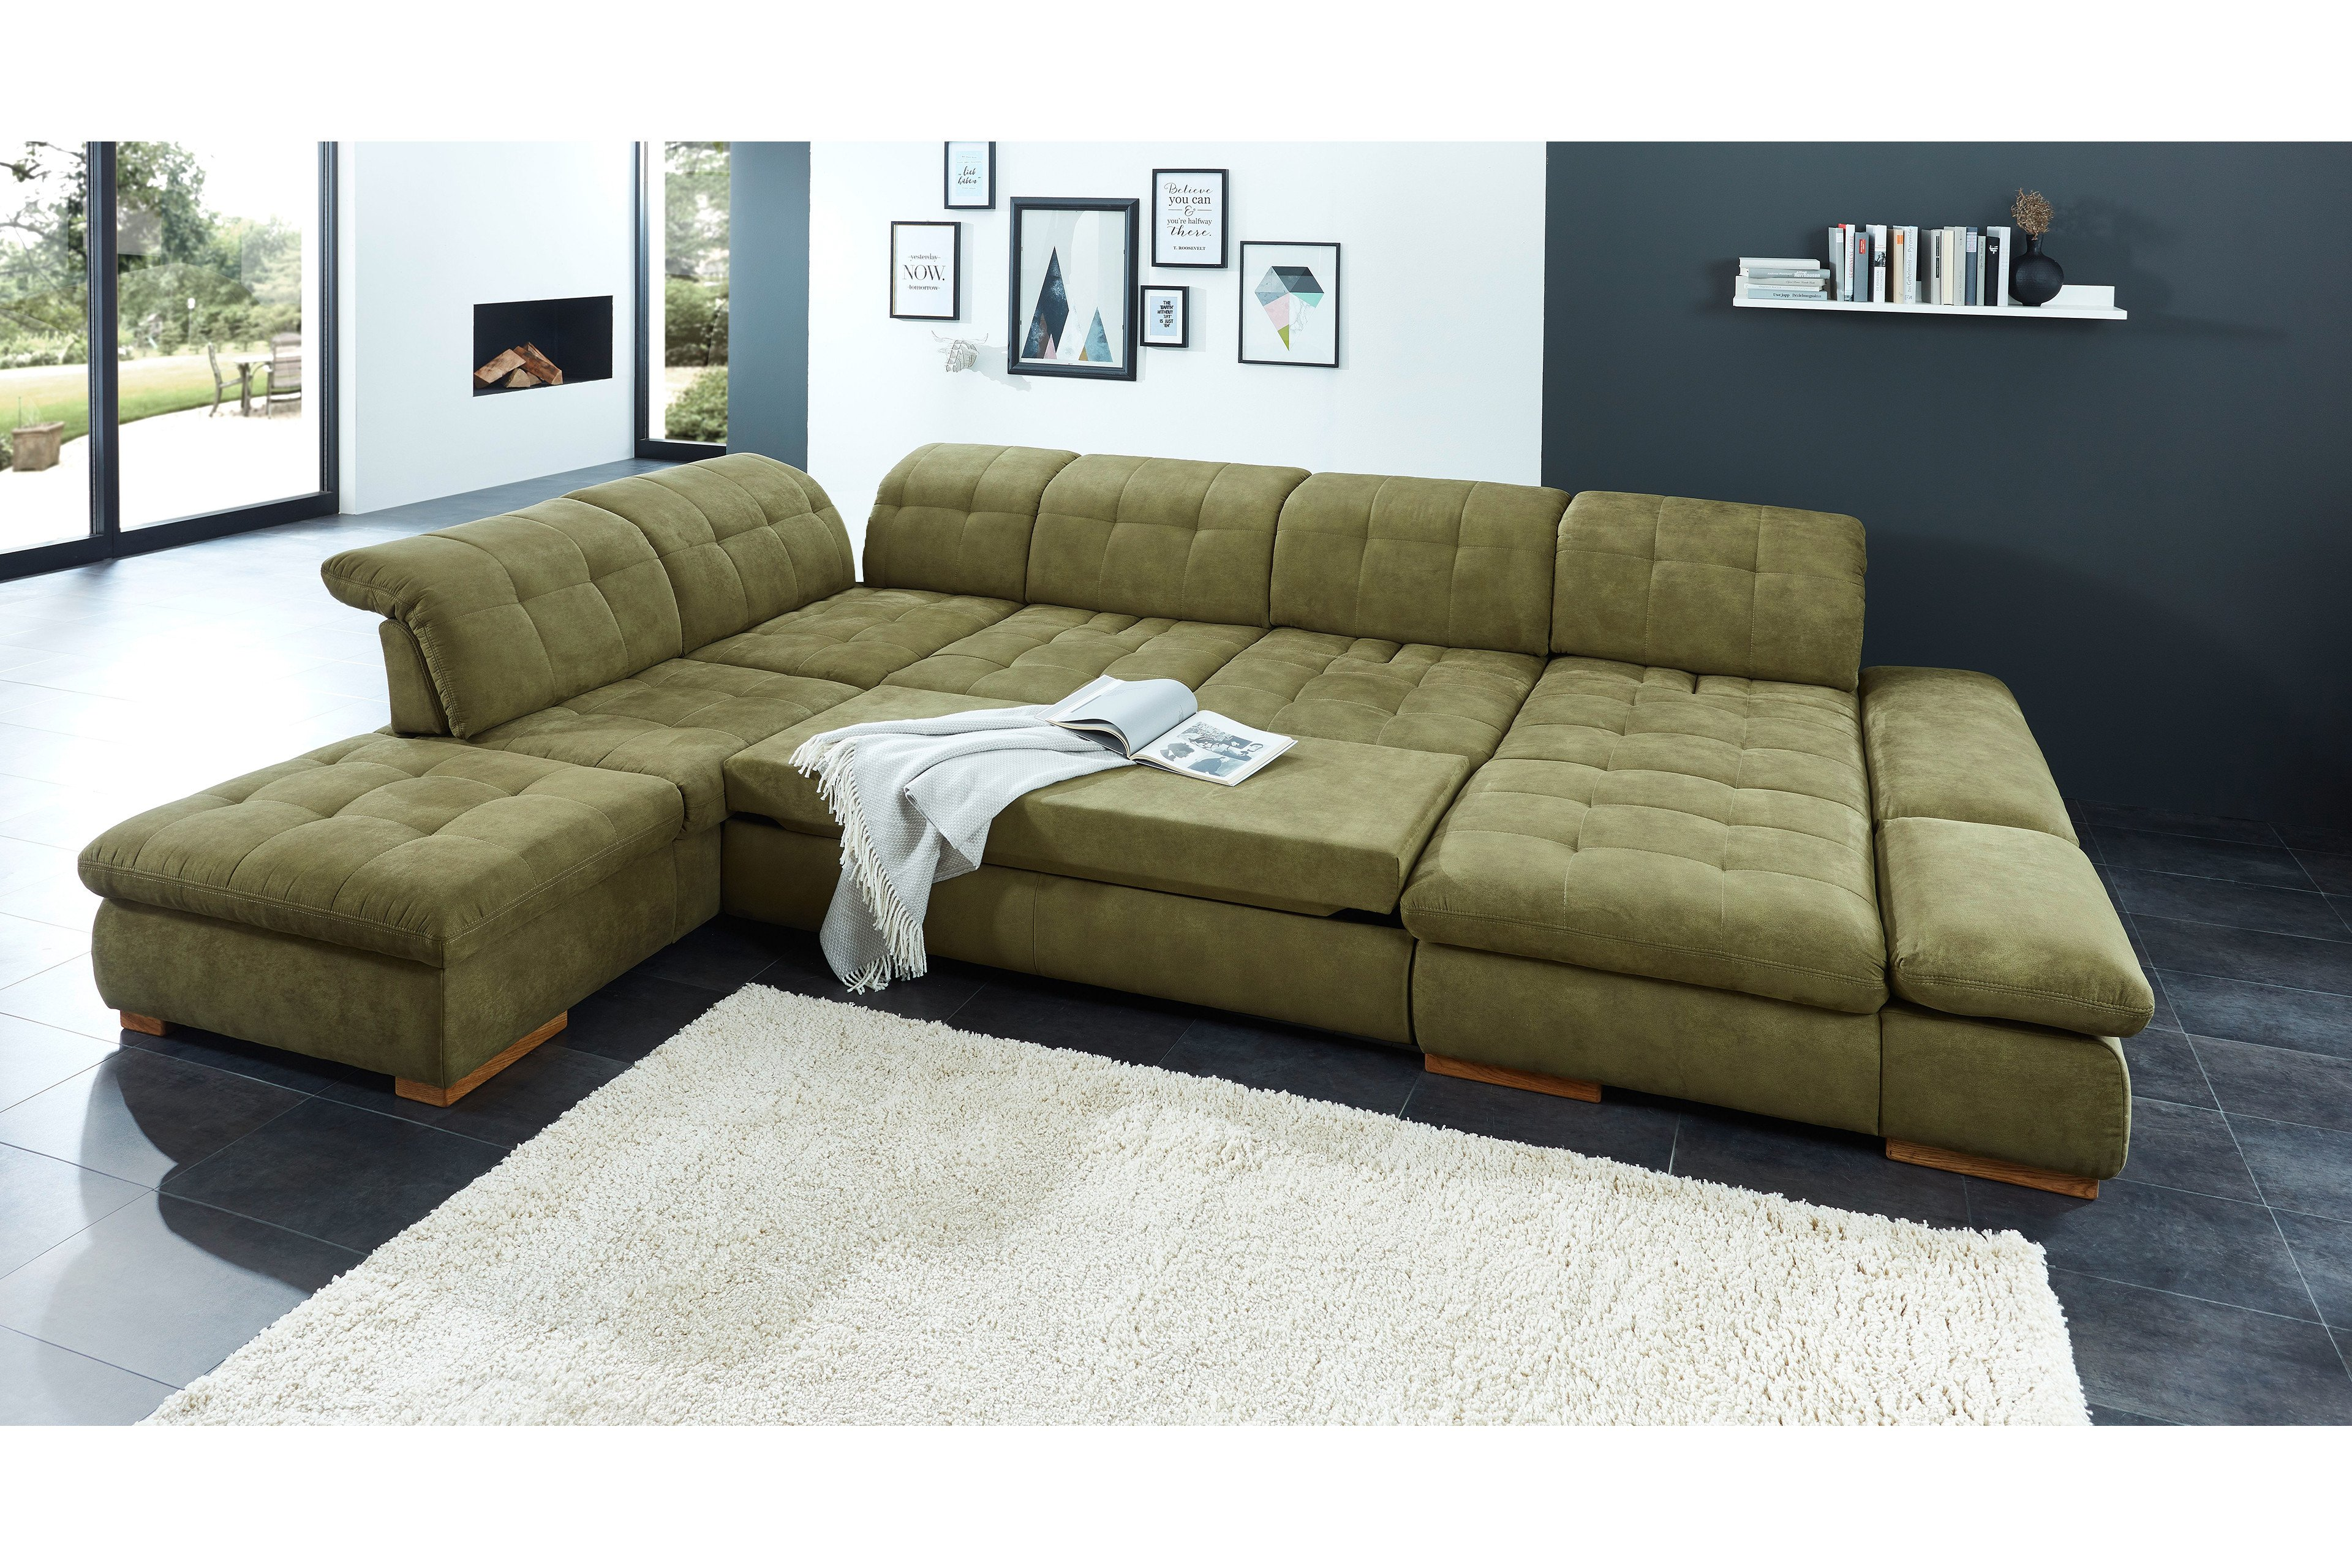 poco polsterm bel houston sofa in u form gr n m bel letz ihr online shop. Black Bedroom Furniture Sets. Home Design Ideas